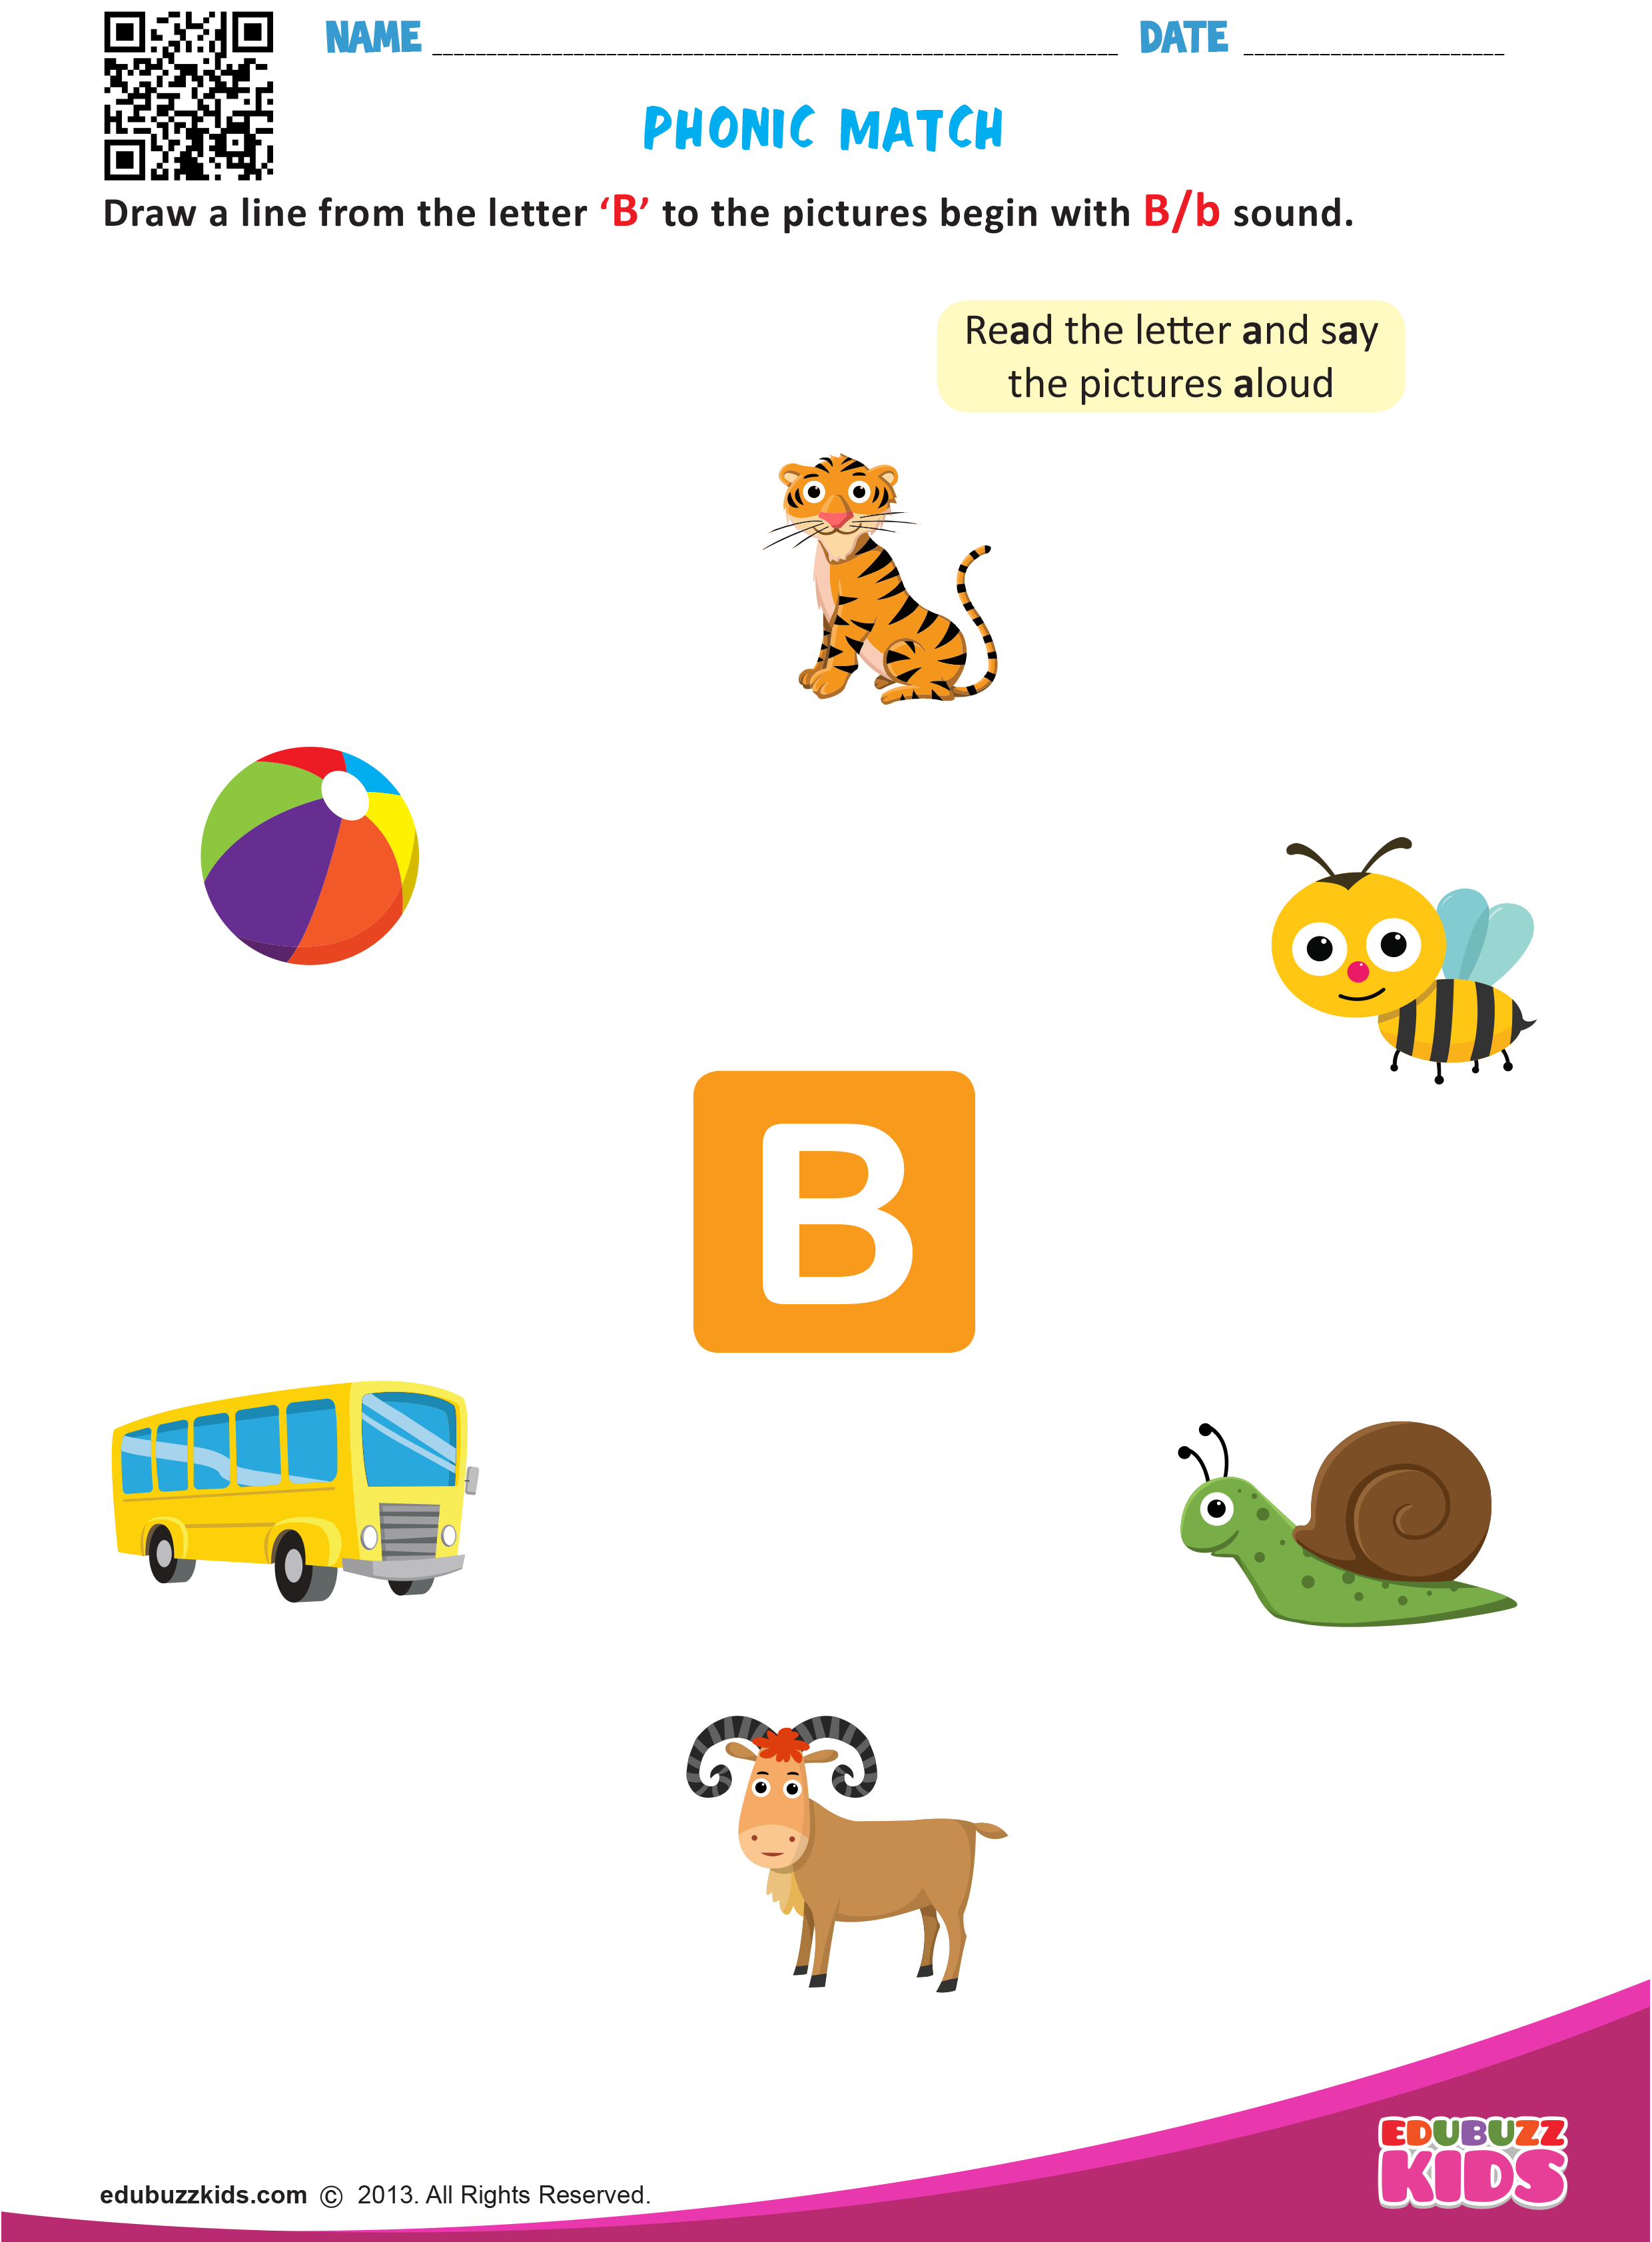 Free English Phonic Match Worksheets That Allow Kids To